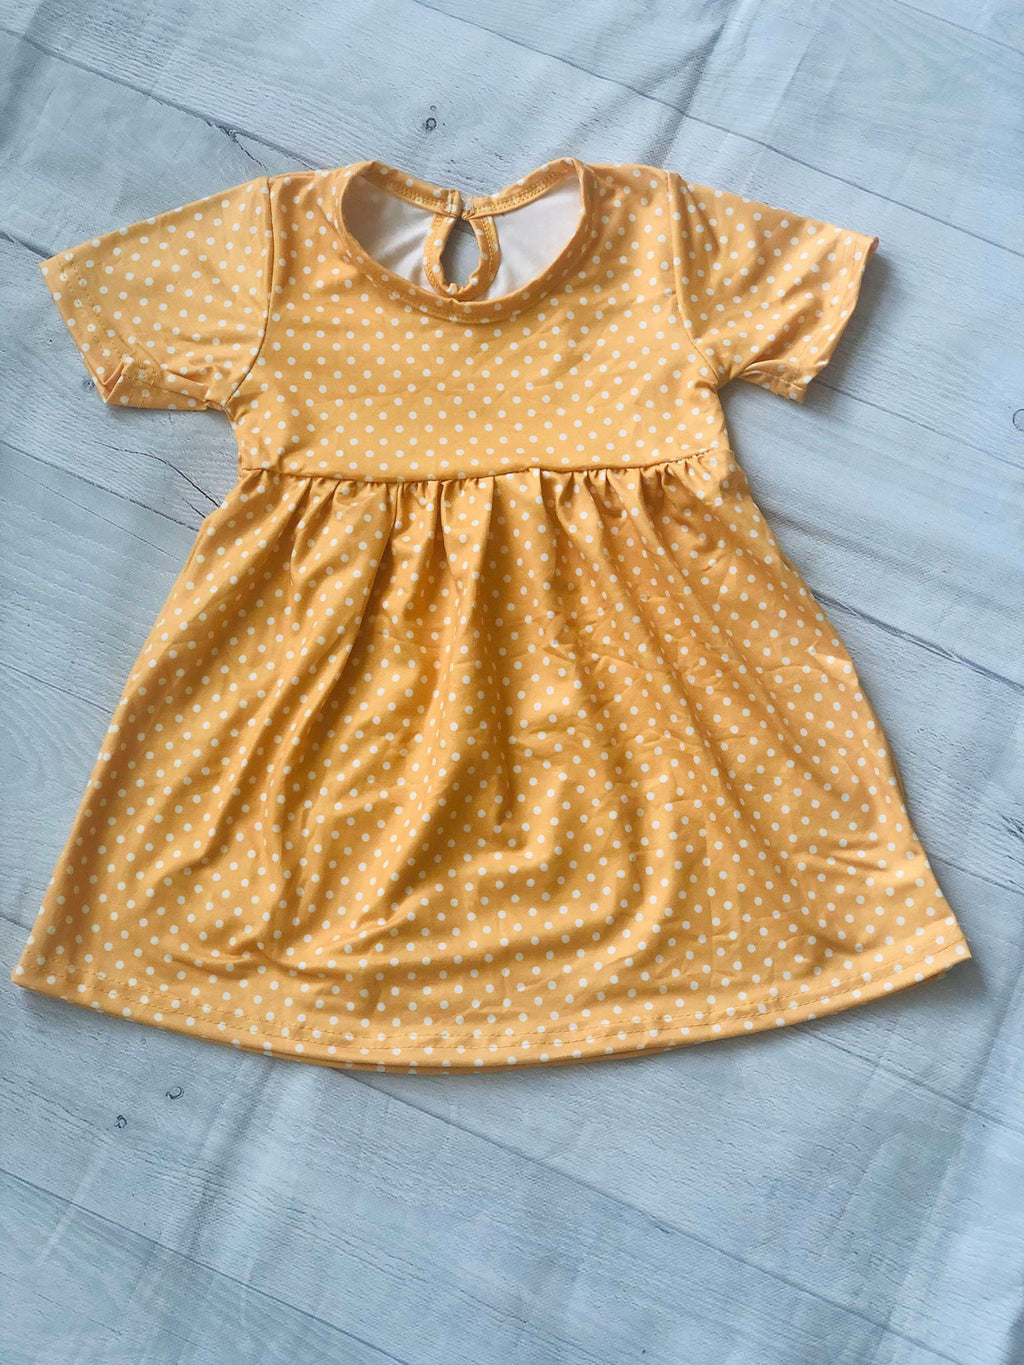 POLKA DOTS MILK SILK DRESS - YELLOW